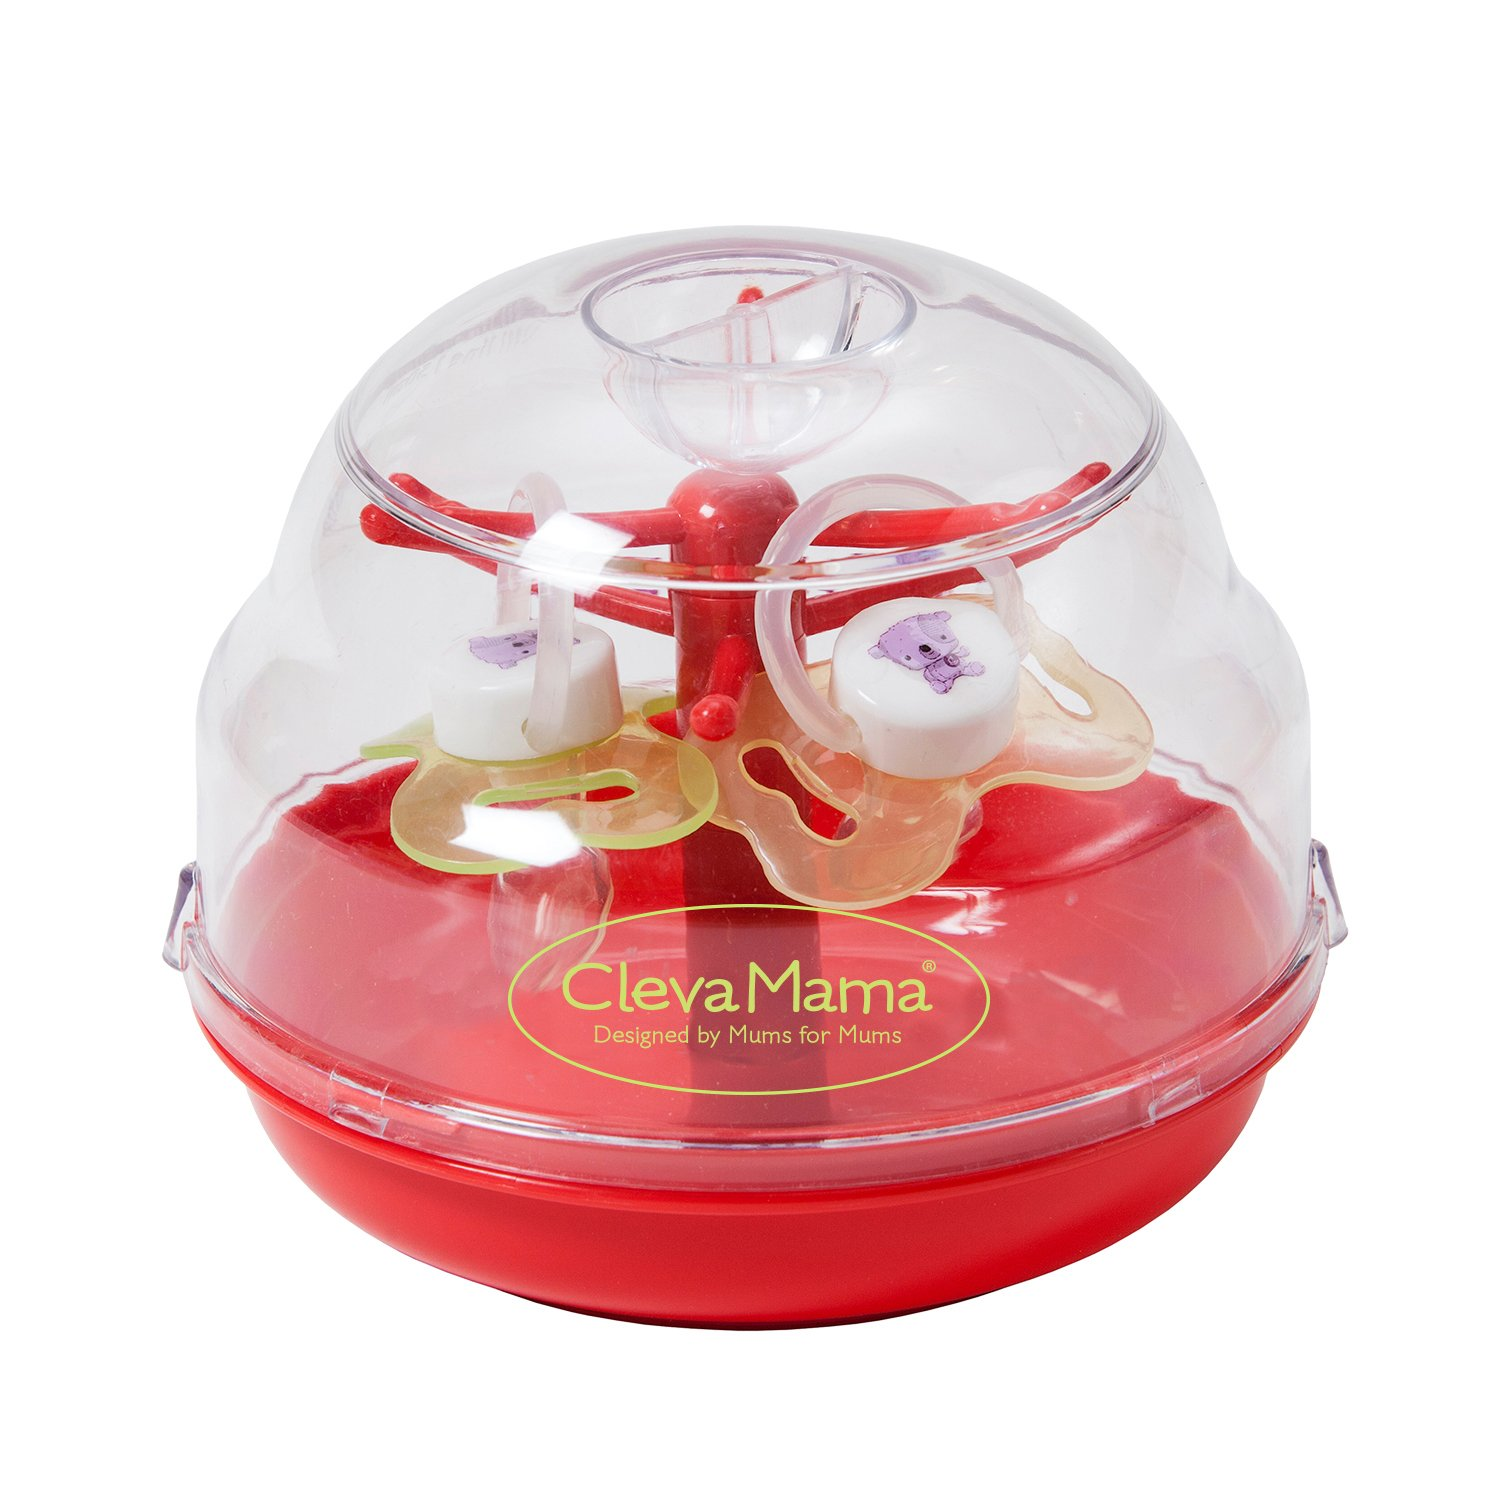 Clevamama Microwave Soother Pacifier Steriliser (BPA-free) CM7002